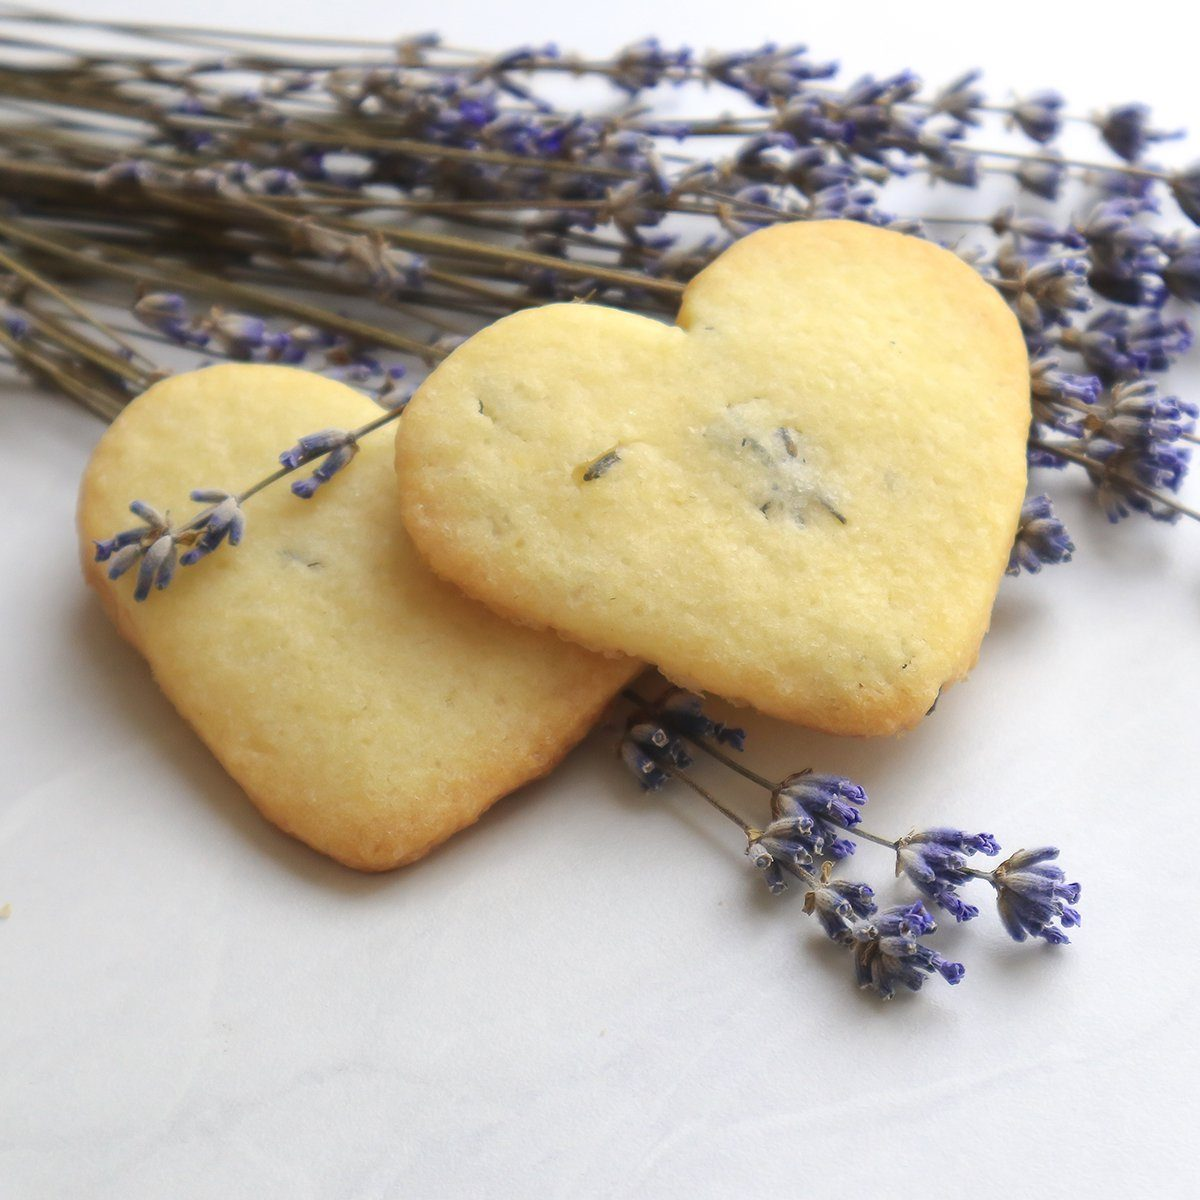 Fresh homemade lavender cookies on light background